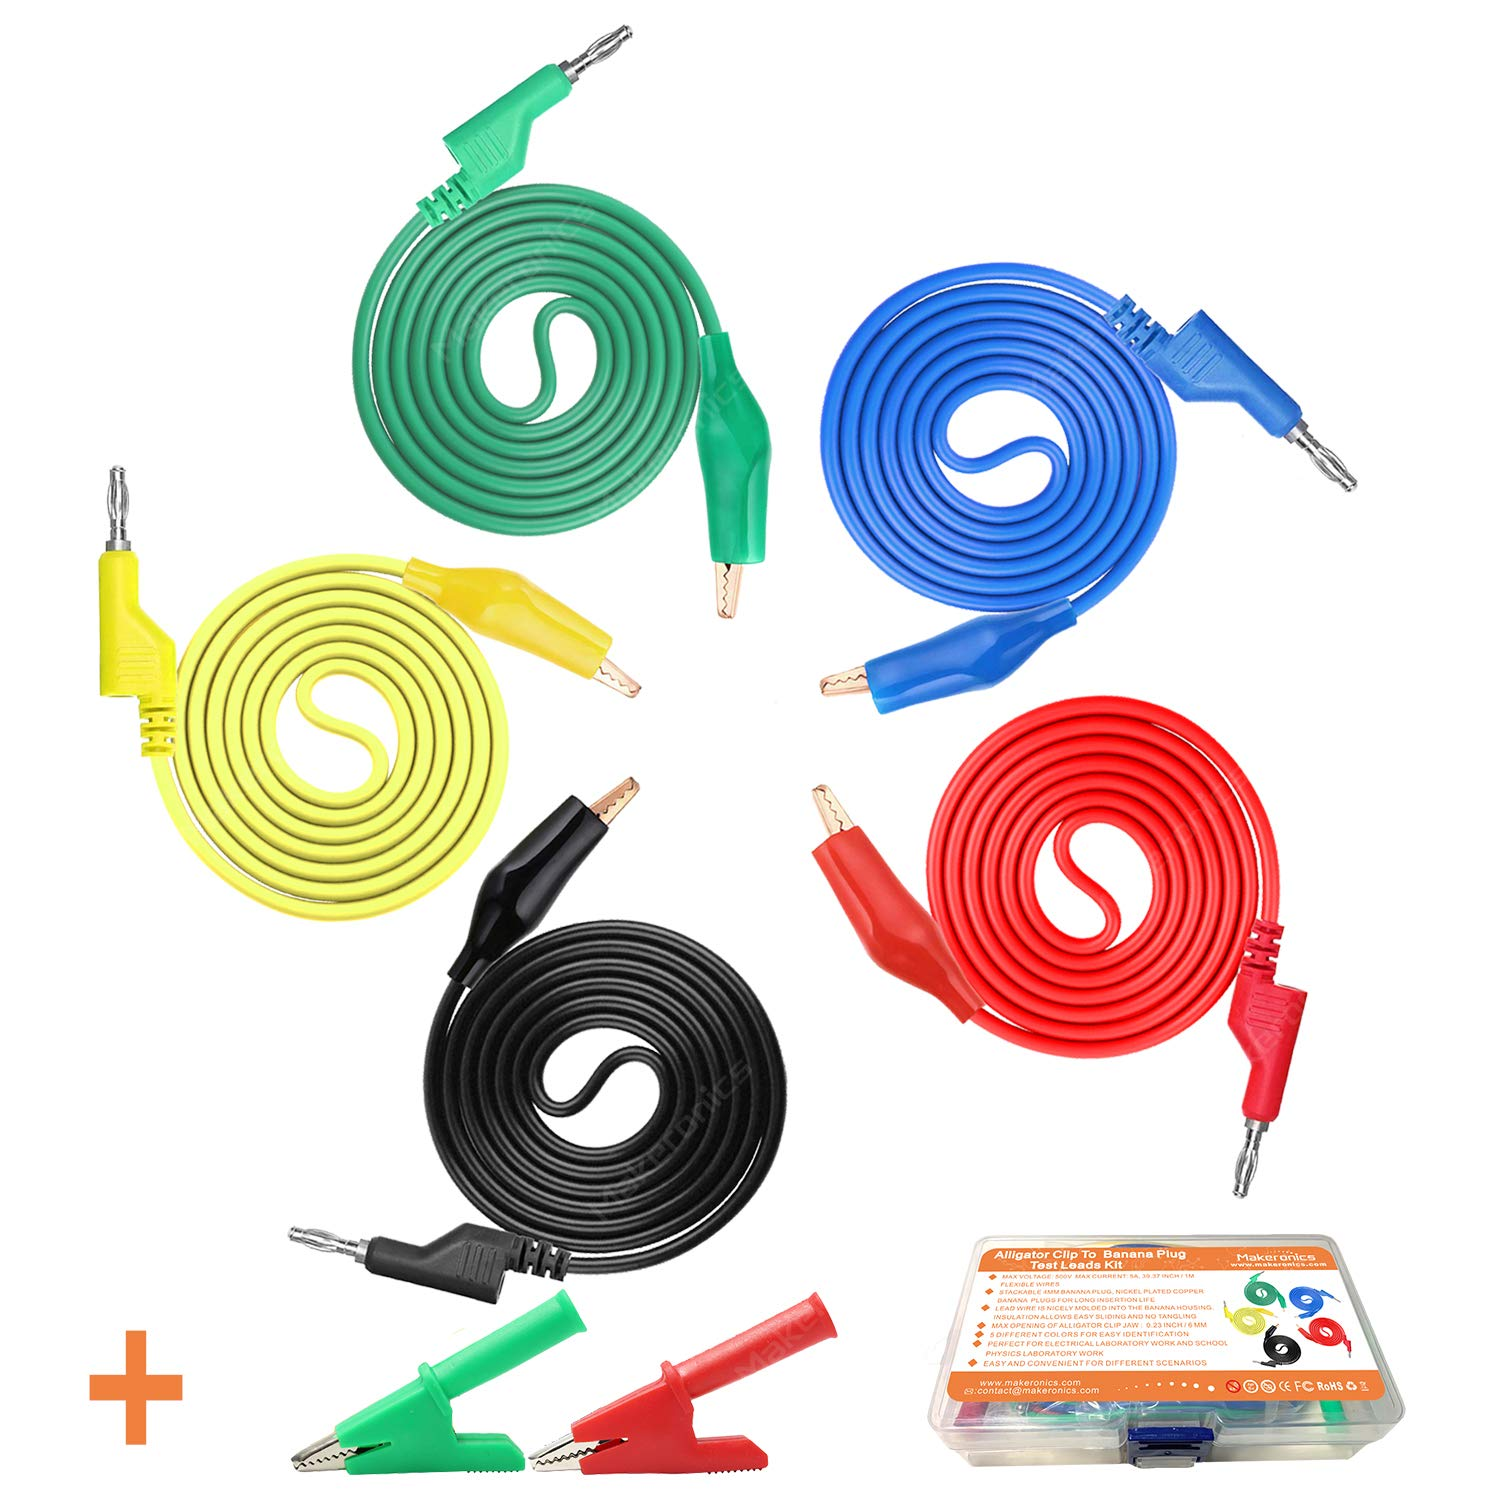 39.37inch // 1m length Flexible Electrical Test Wires 1000V//15A 4mm Stackable Banana Plug 5 Colors Makeronics 5pcs Banana to Banana Plug Test Lead Set for Multimeter Black//Red//Green//Blue//Yellow